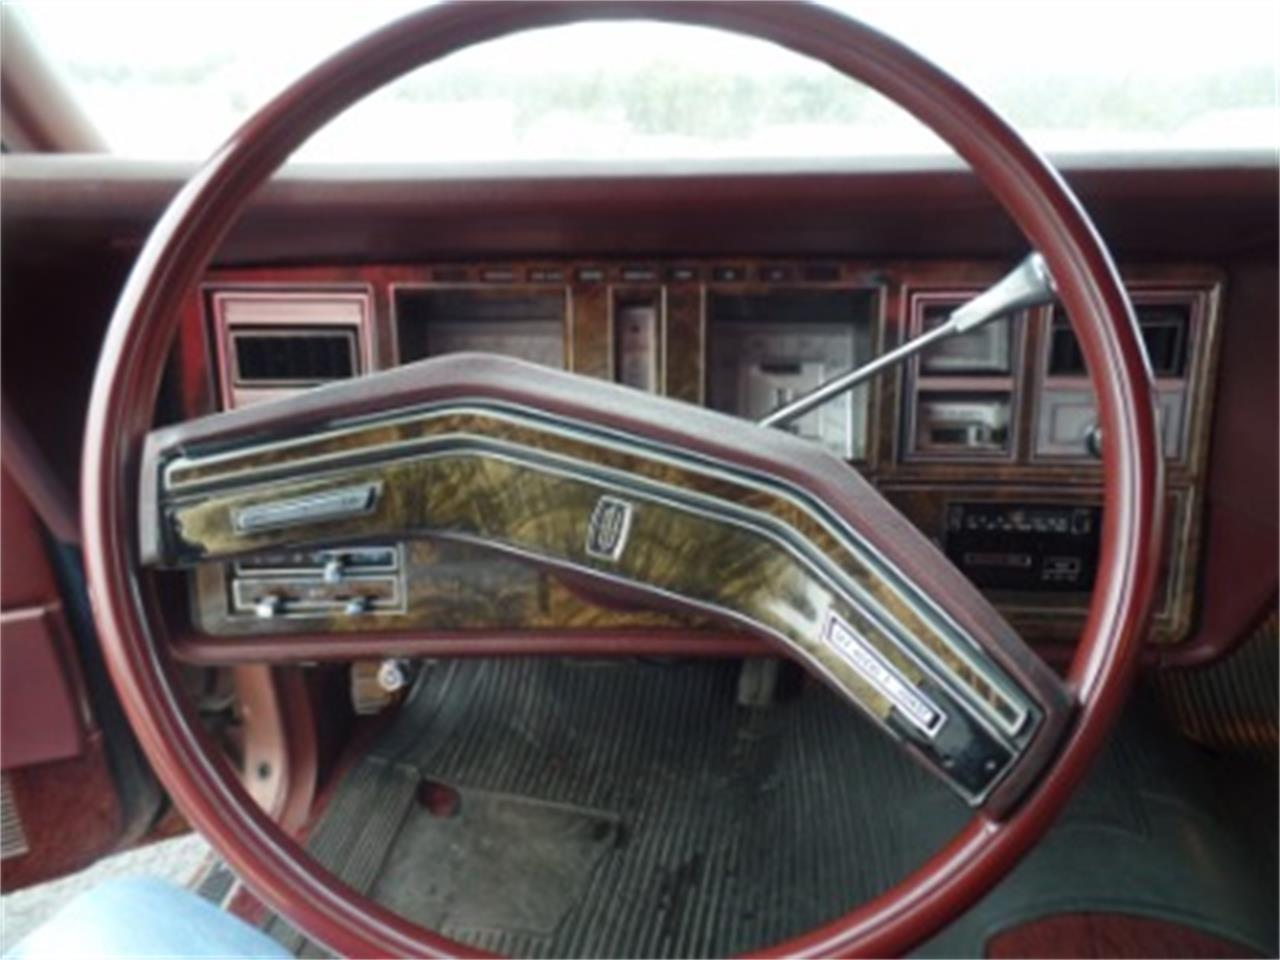 1979 Lincoln Continental for sale in Mundelein, IL – photo 21